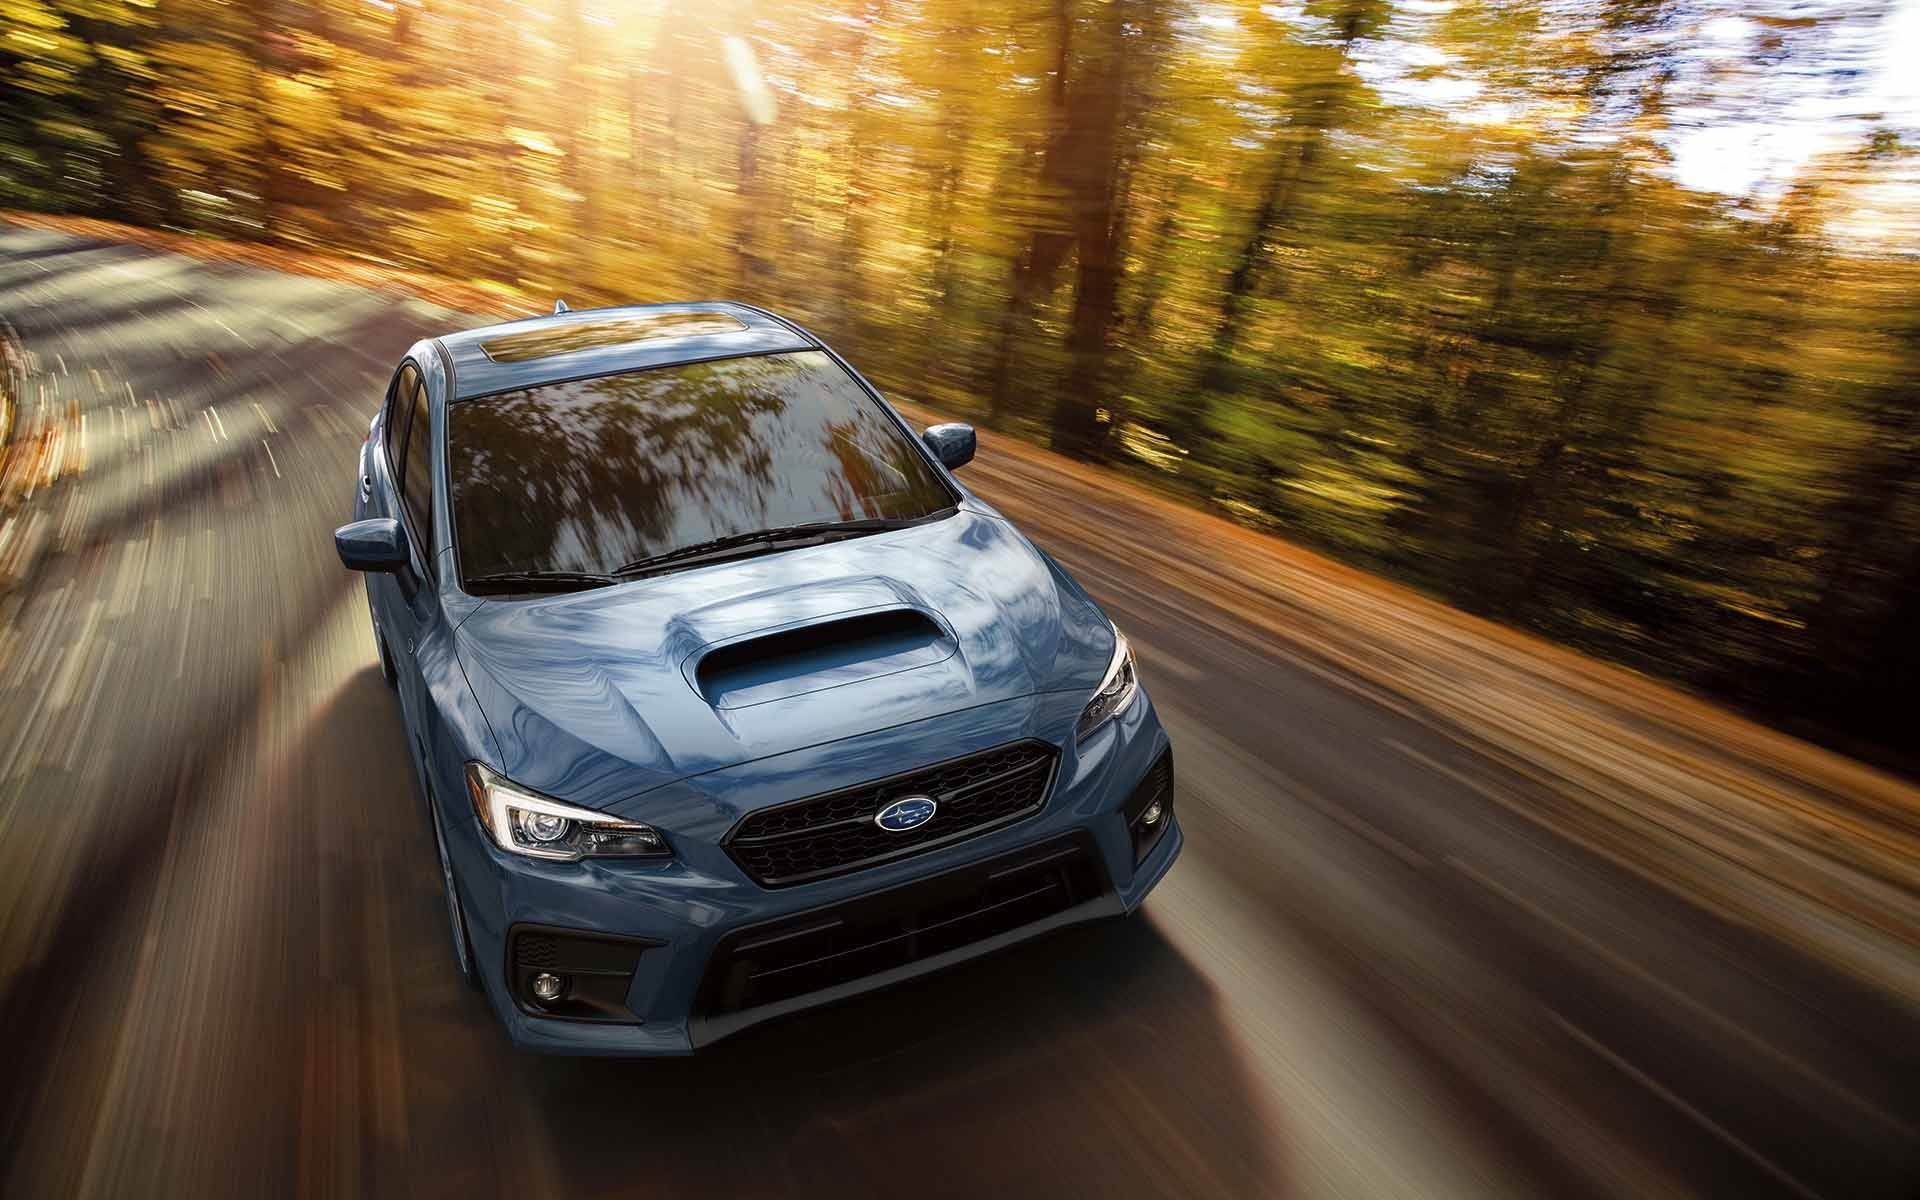 Subaru Image 2018 Wrx Limited With 50th Anniversary Special Edition Package Shown In Heritage Blue